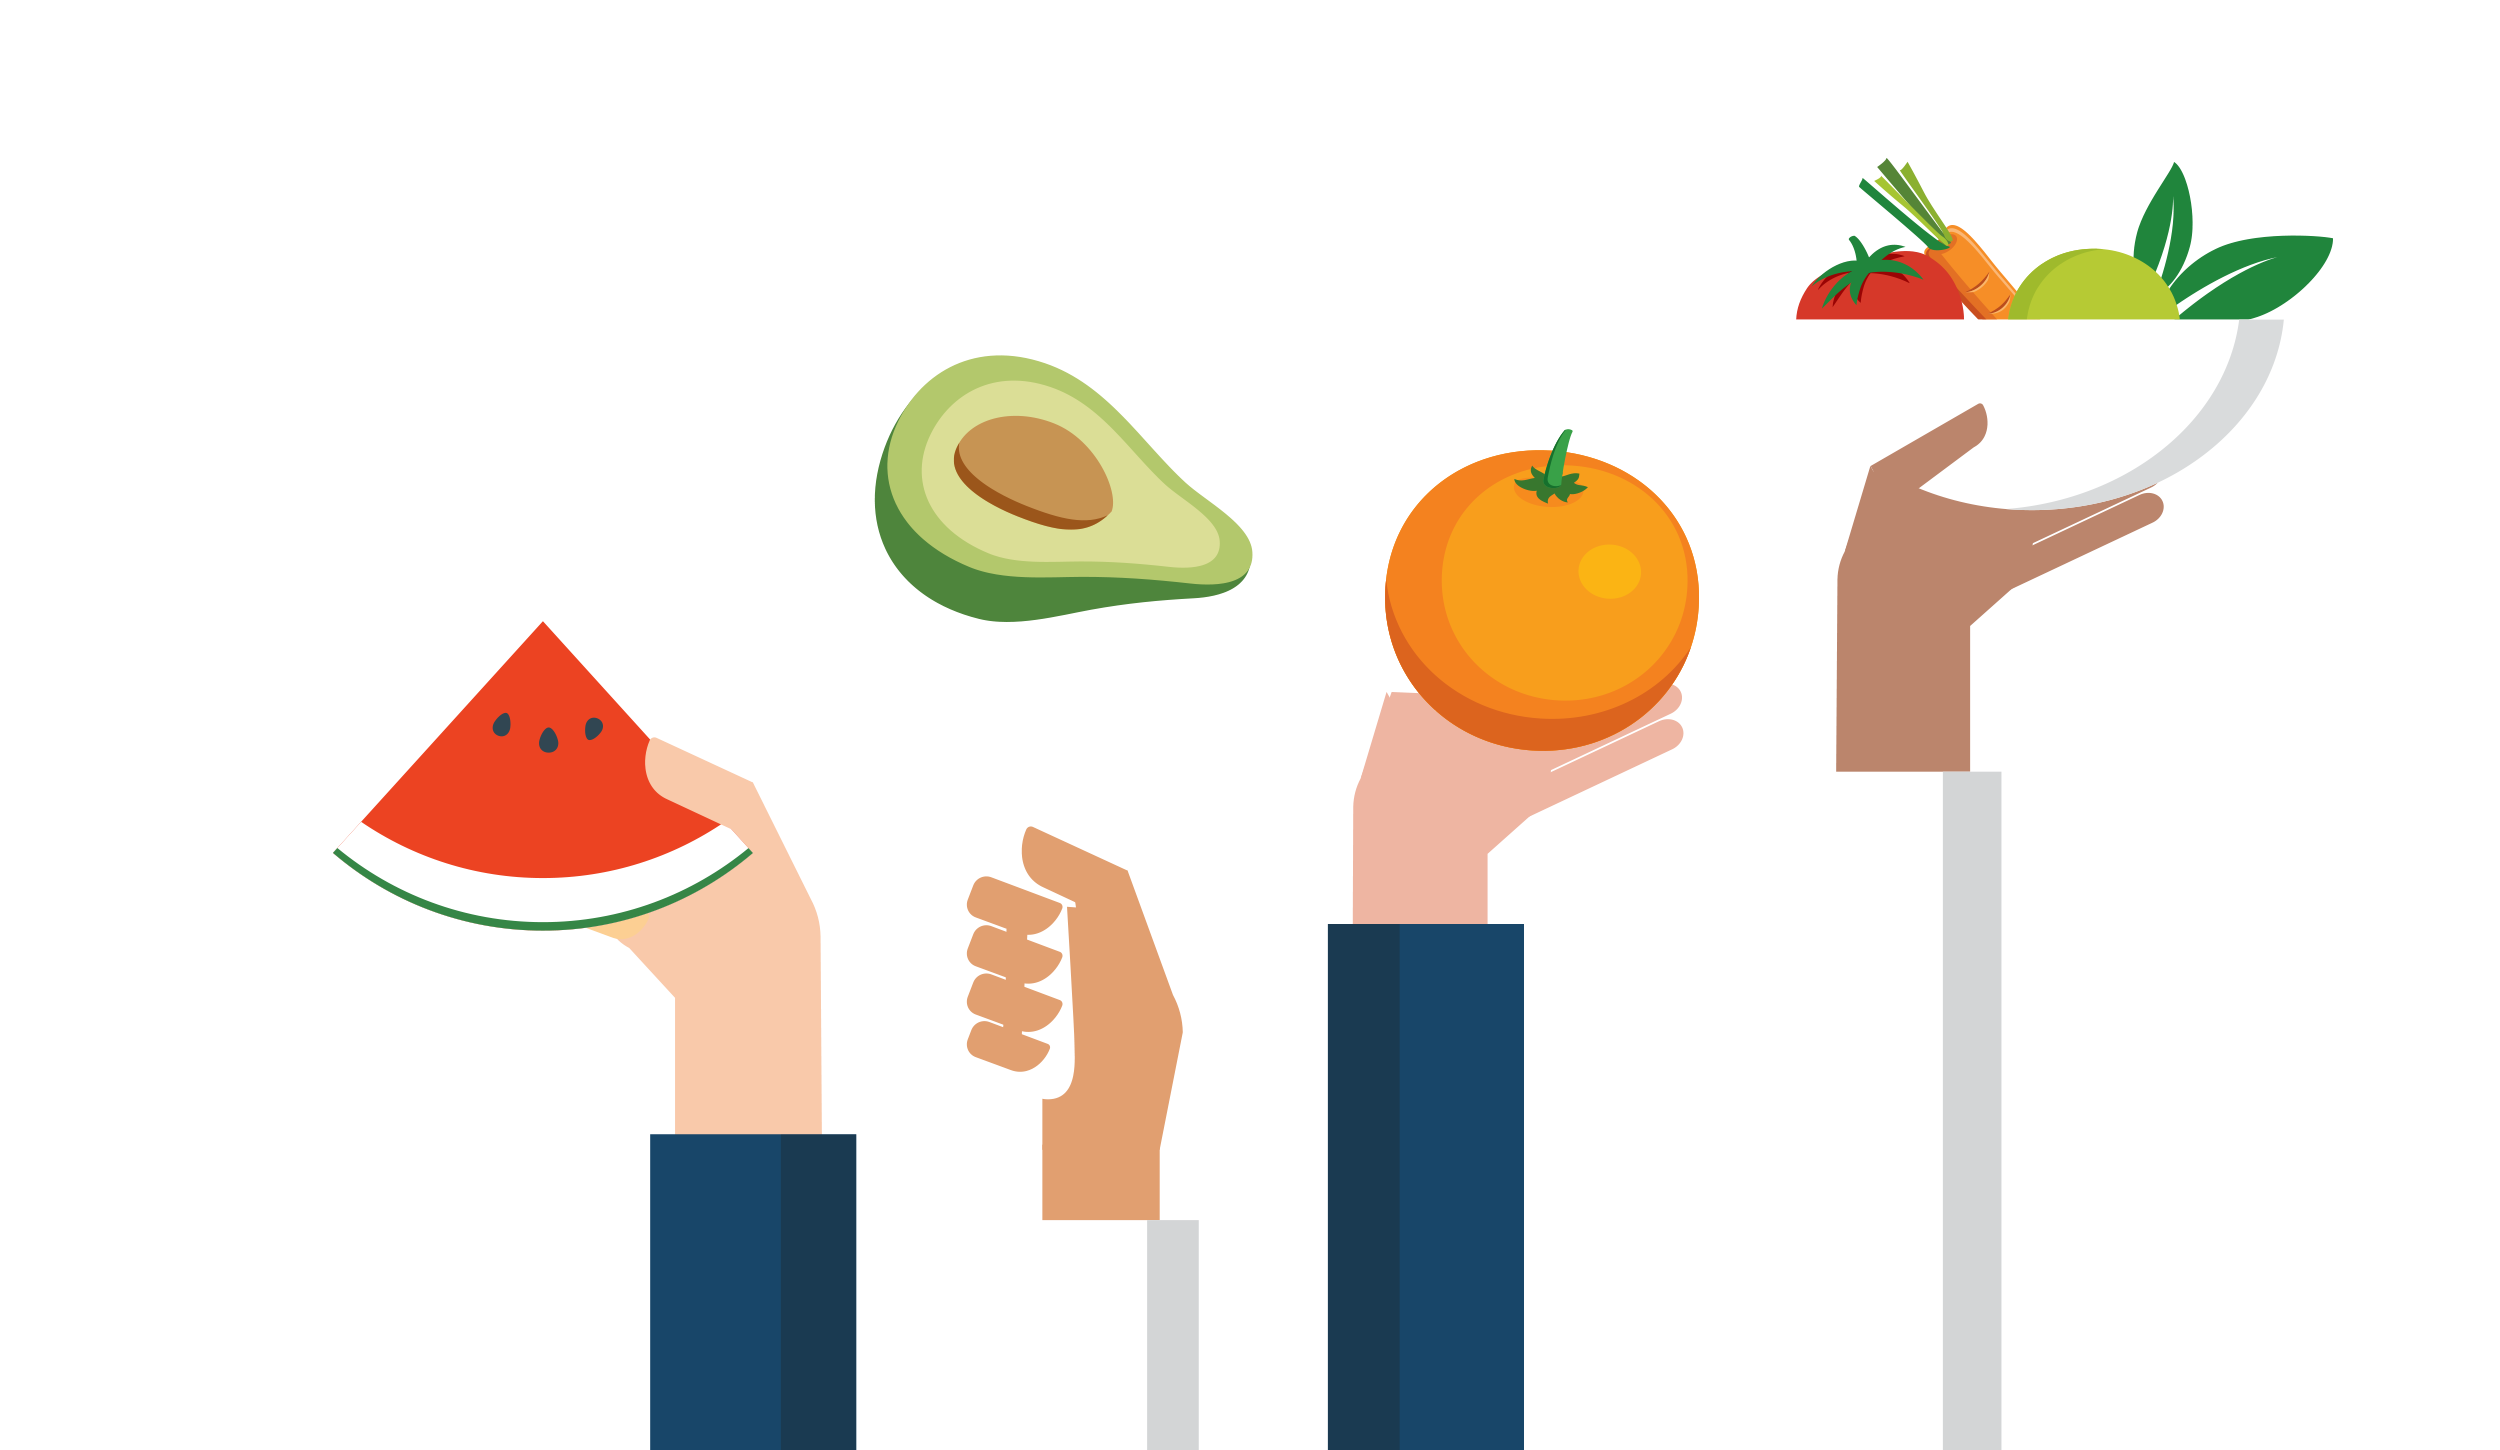 Four hands holding up a watermelon, avocado, orange and bowl of fruit.